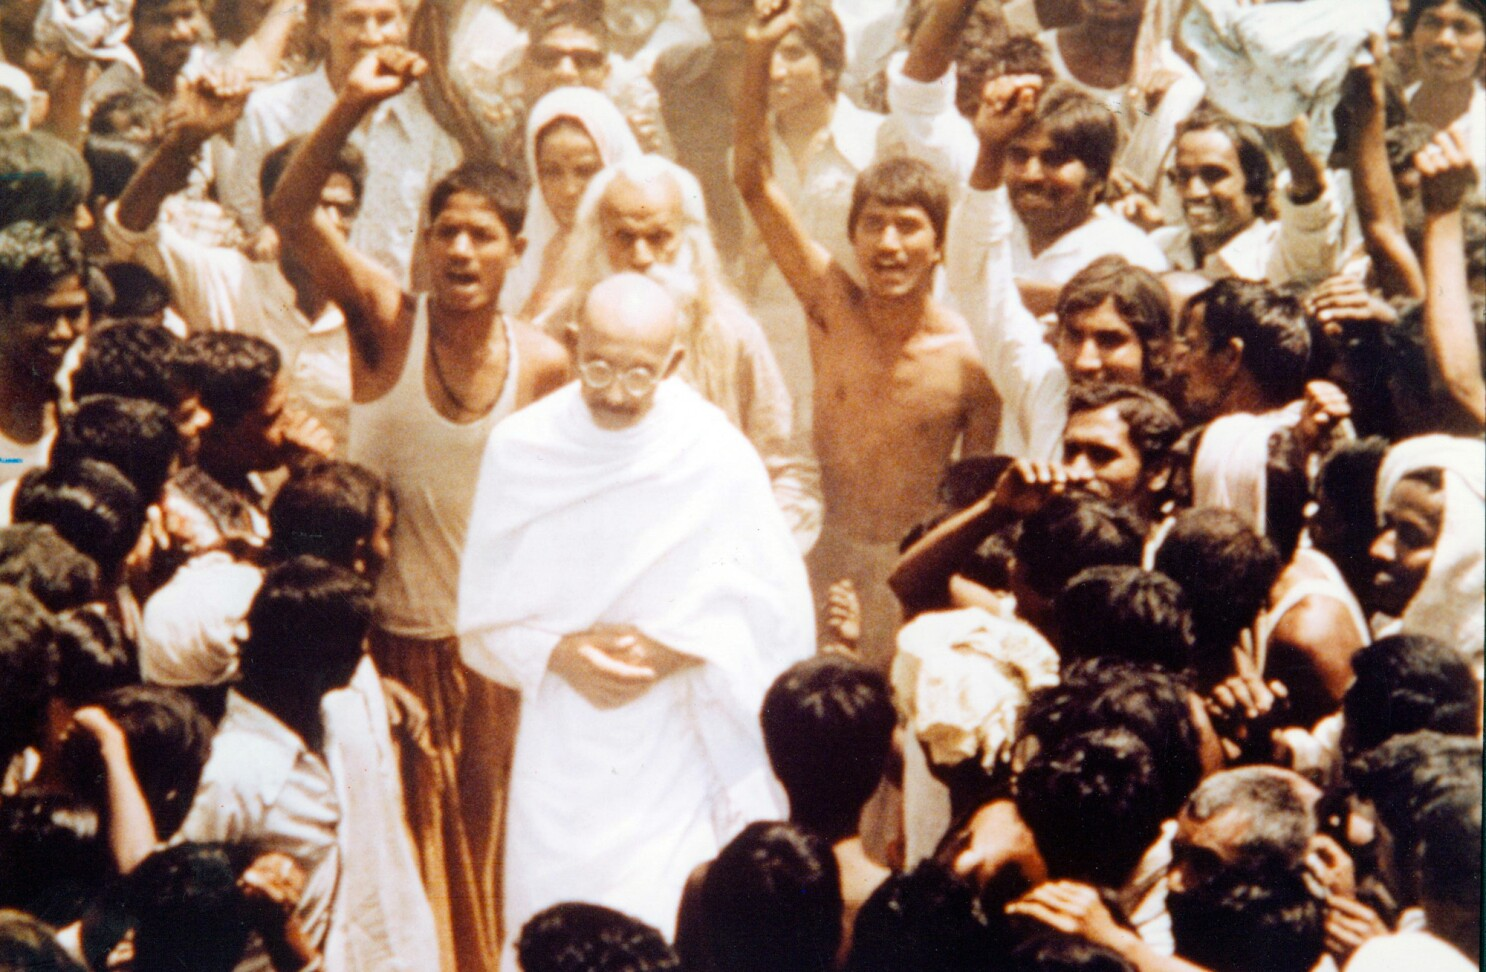 Movies on TV this week: 'Gandhi'; 'Forrest Gump' and more - Los ...